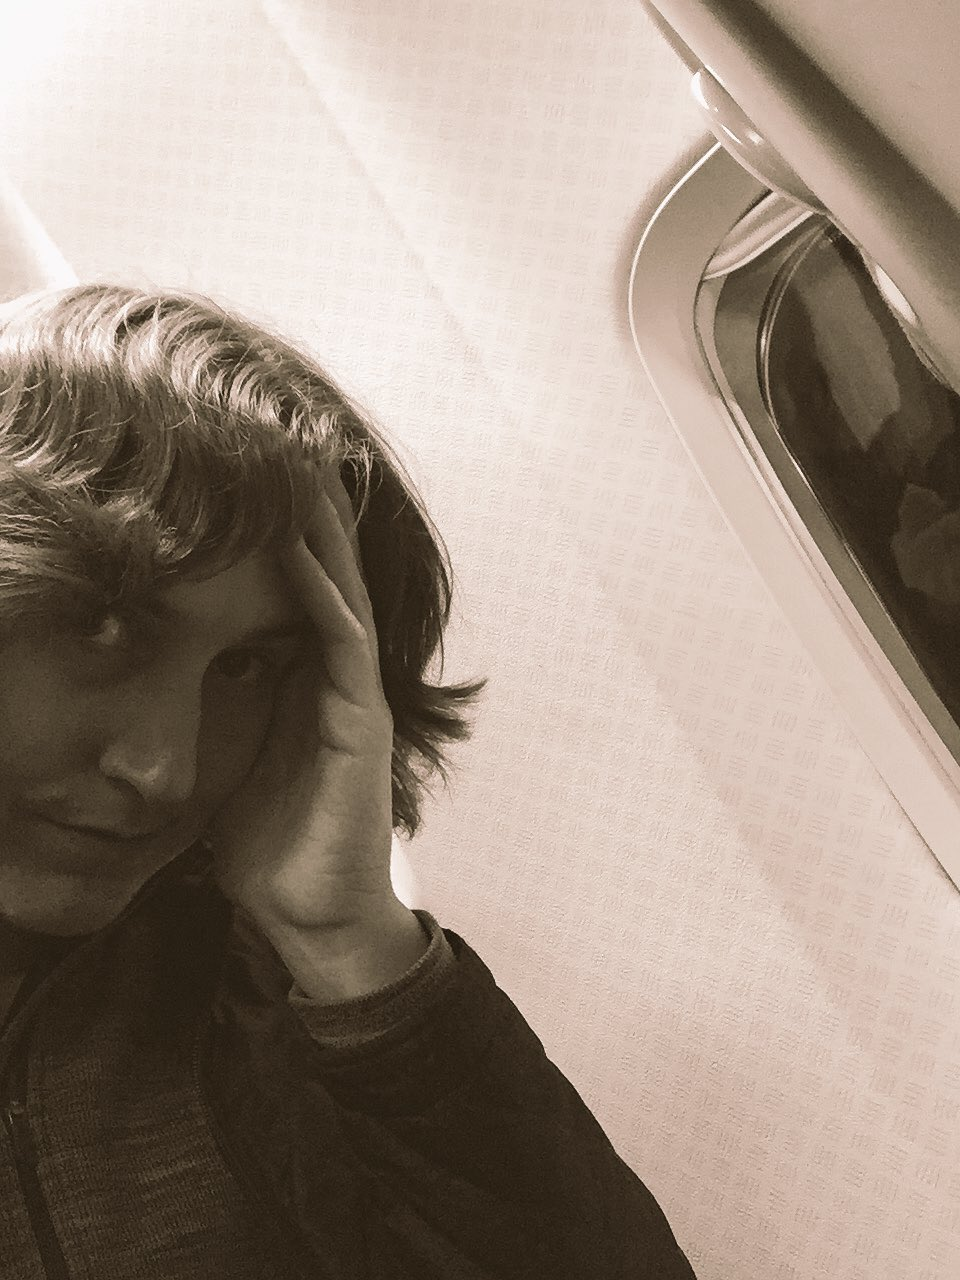 I'm on an airplane again. SYD ✈️ MEL https://t.co/zz0HqZRmcK